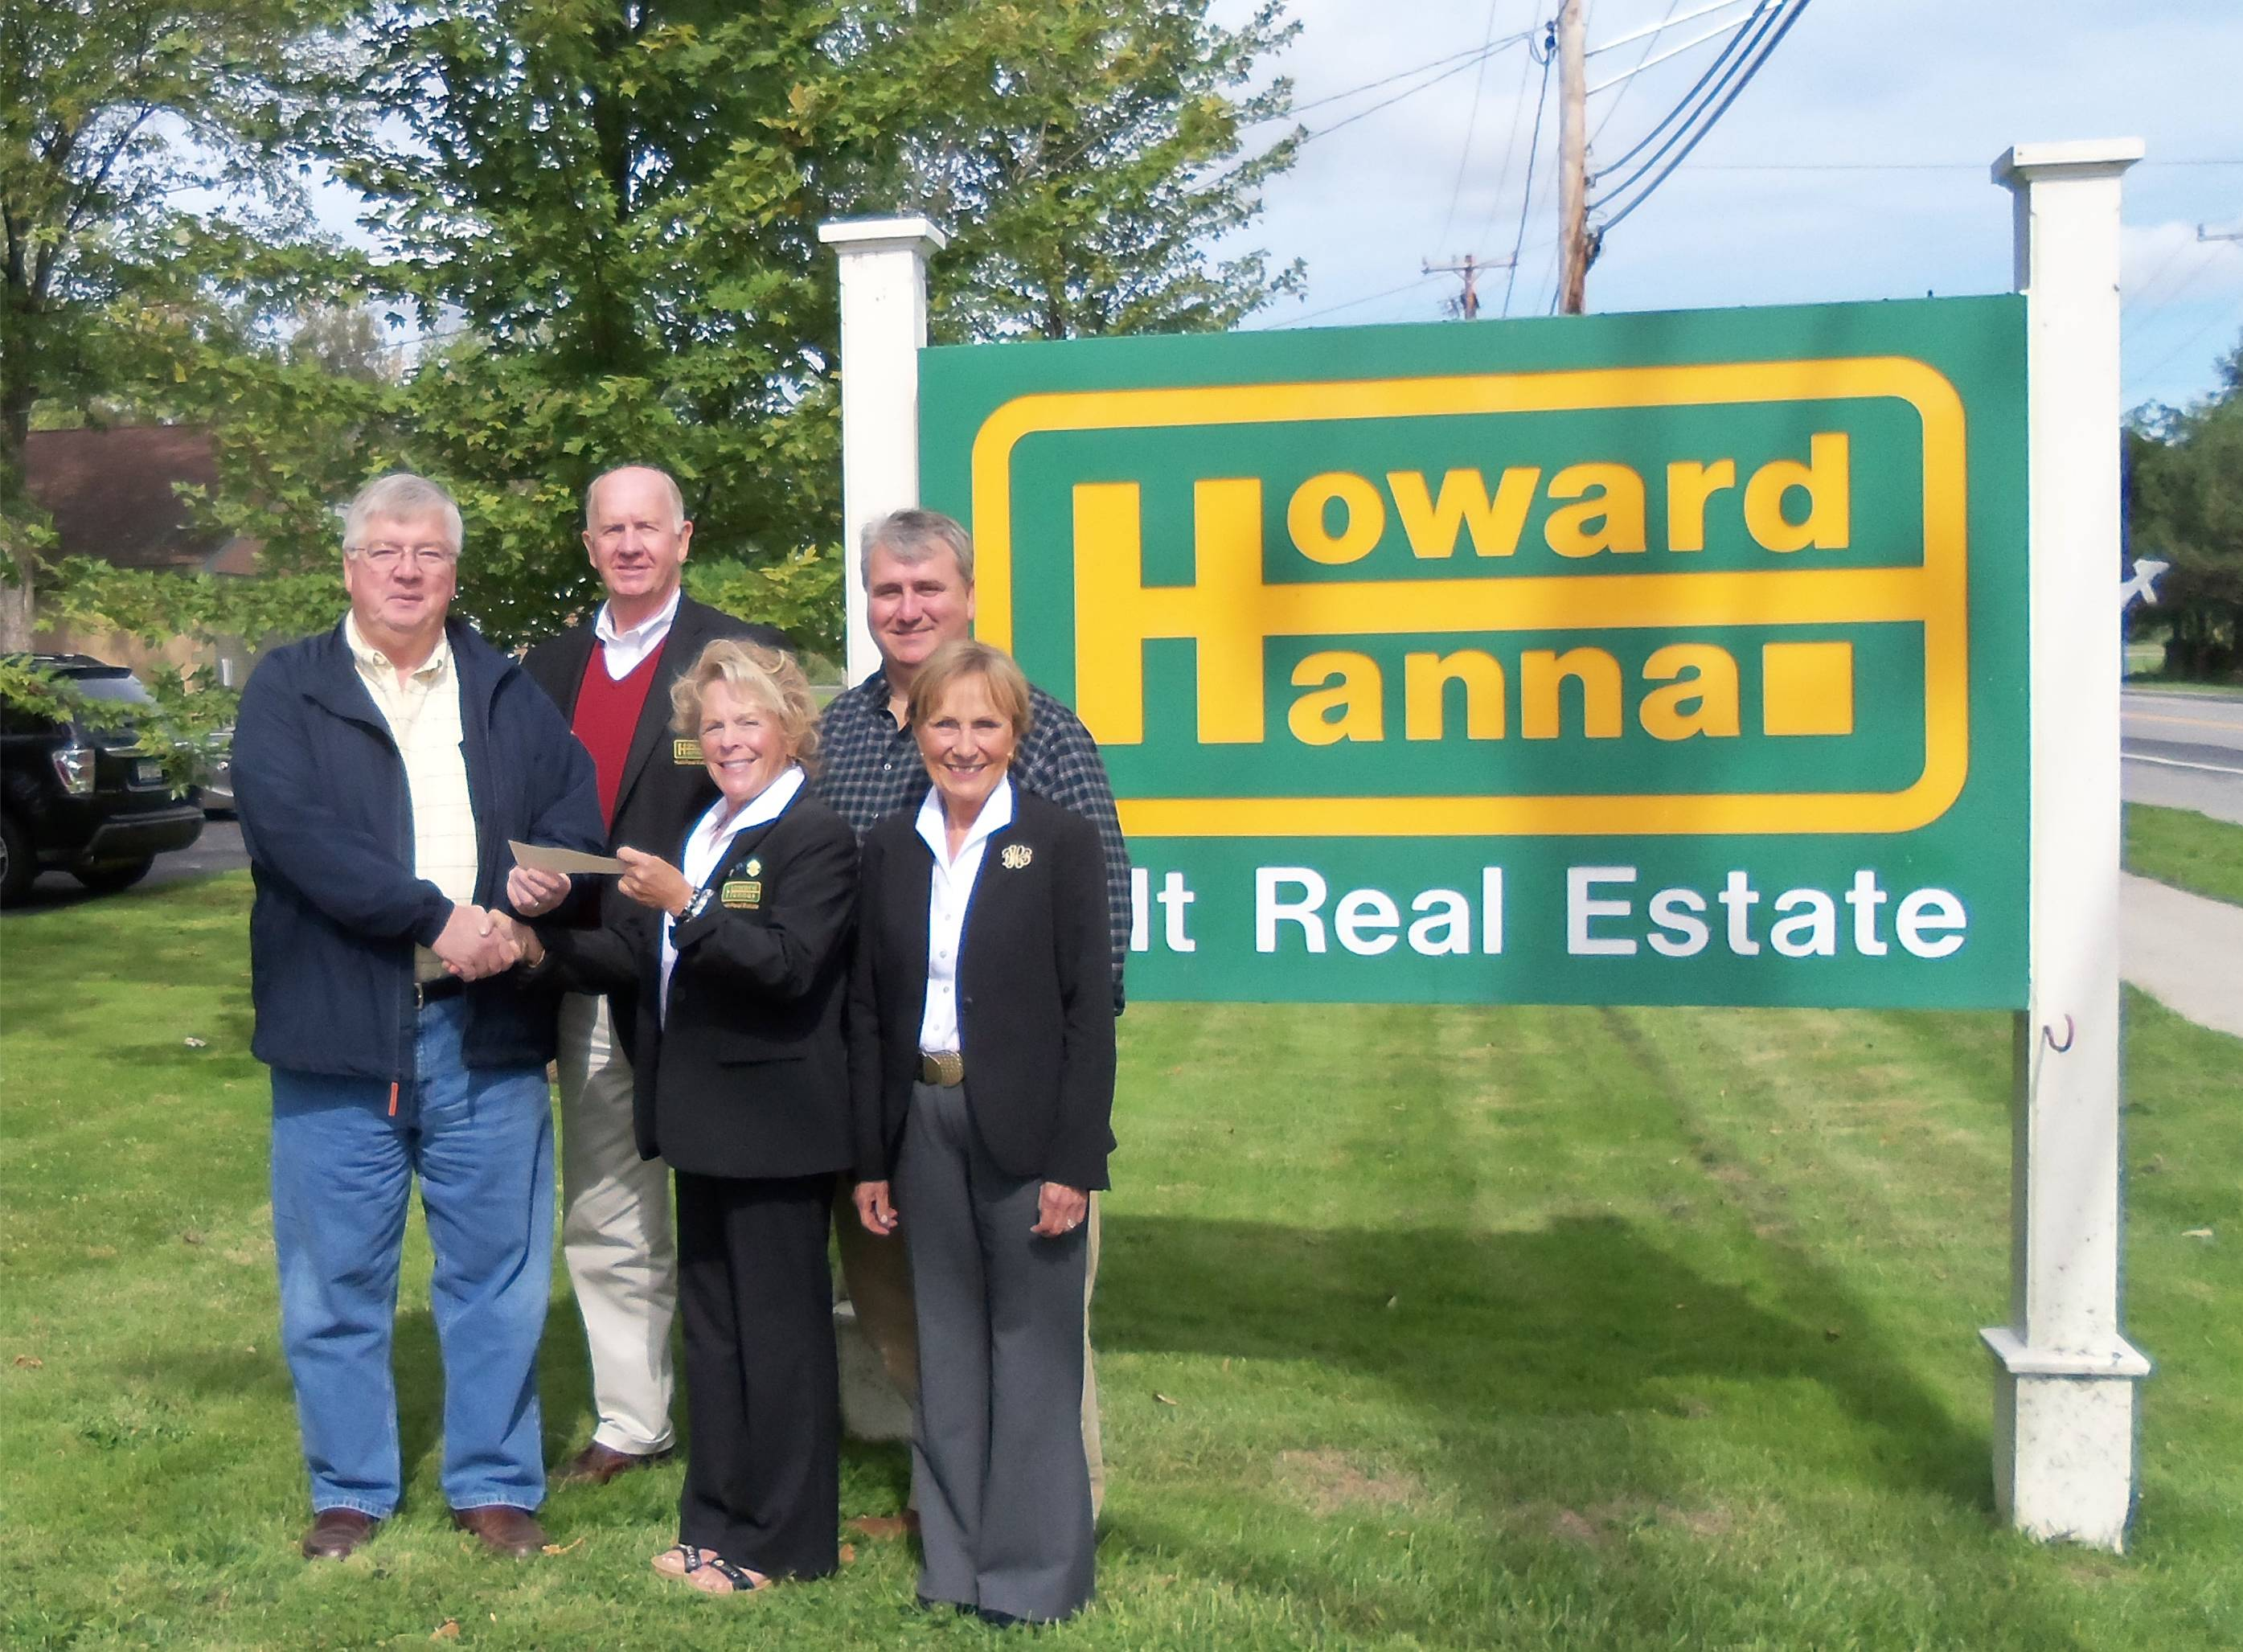 Howard Hanna Holt Habitat for Humanity